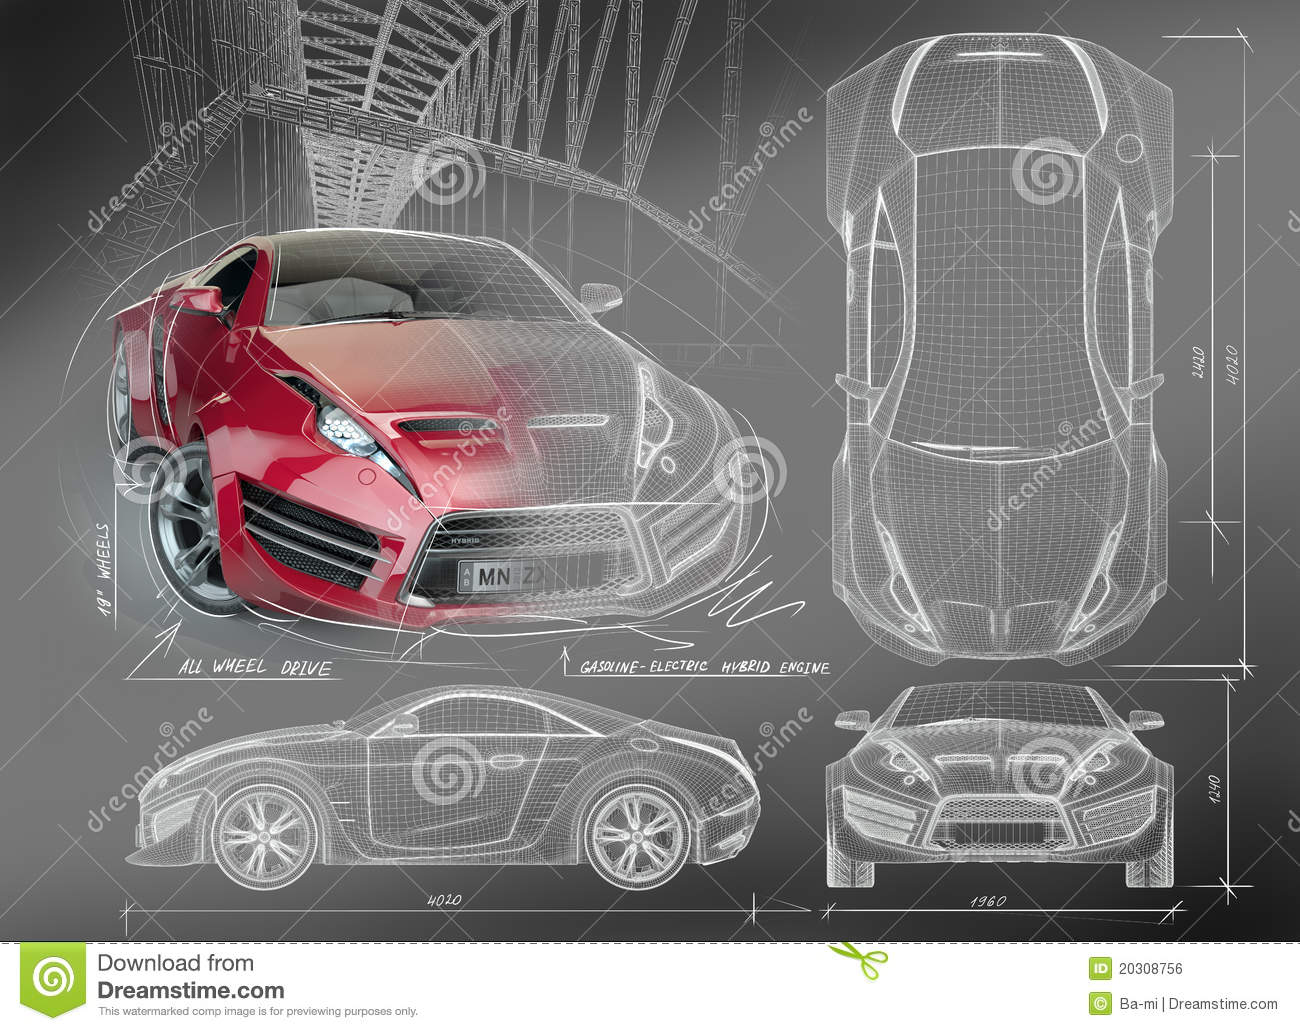 Car design creator by makulaa bmw x7 and evolution car design bugatti type 40 blueprint download malvernweather Image collections